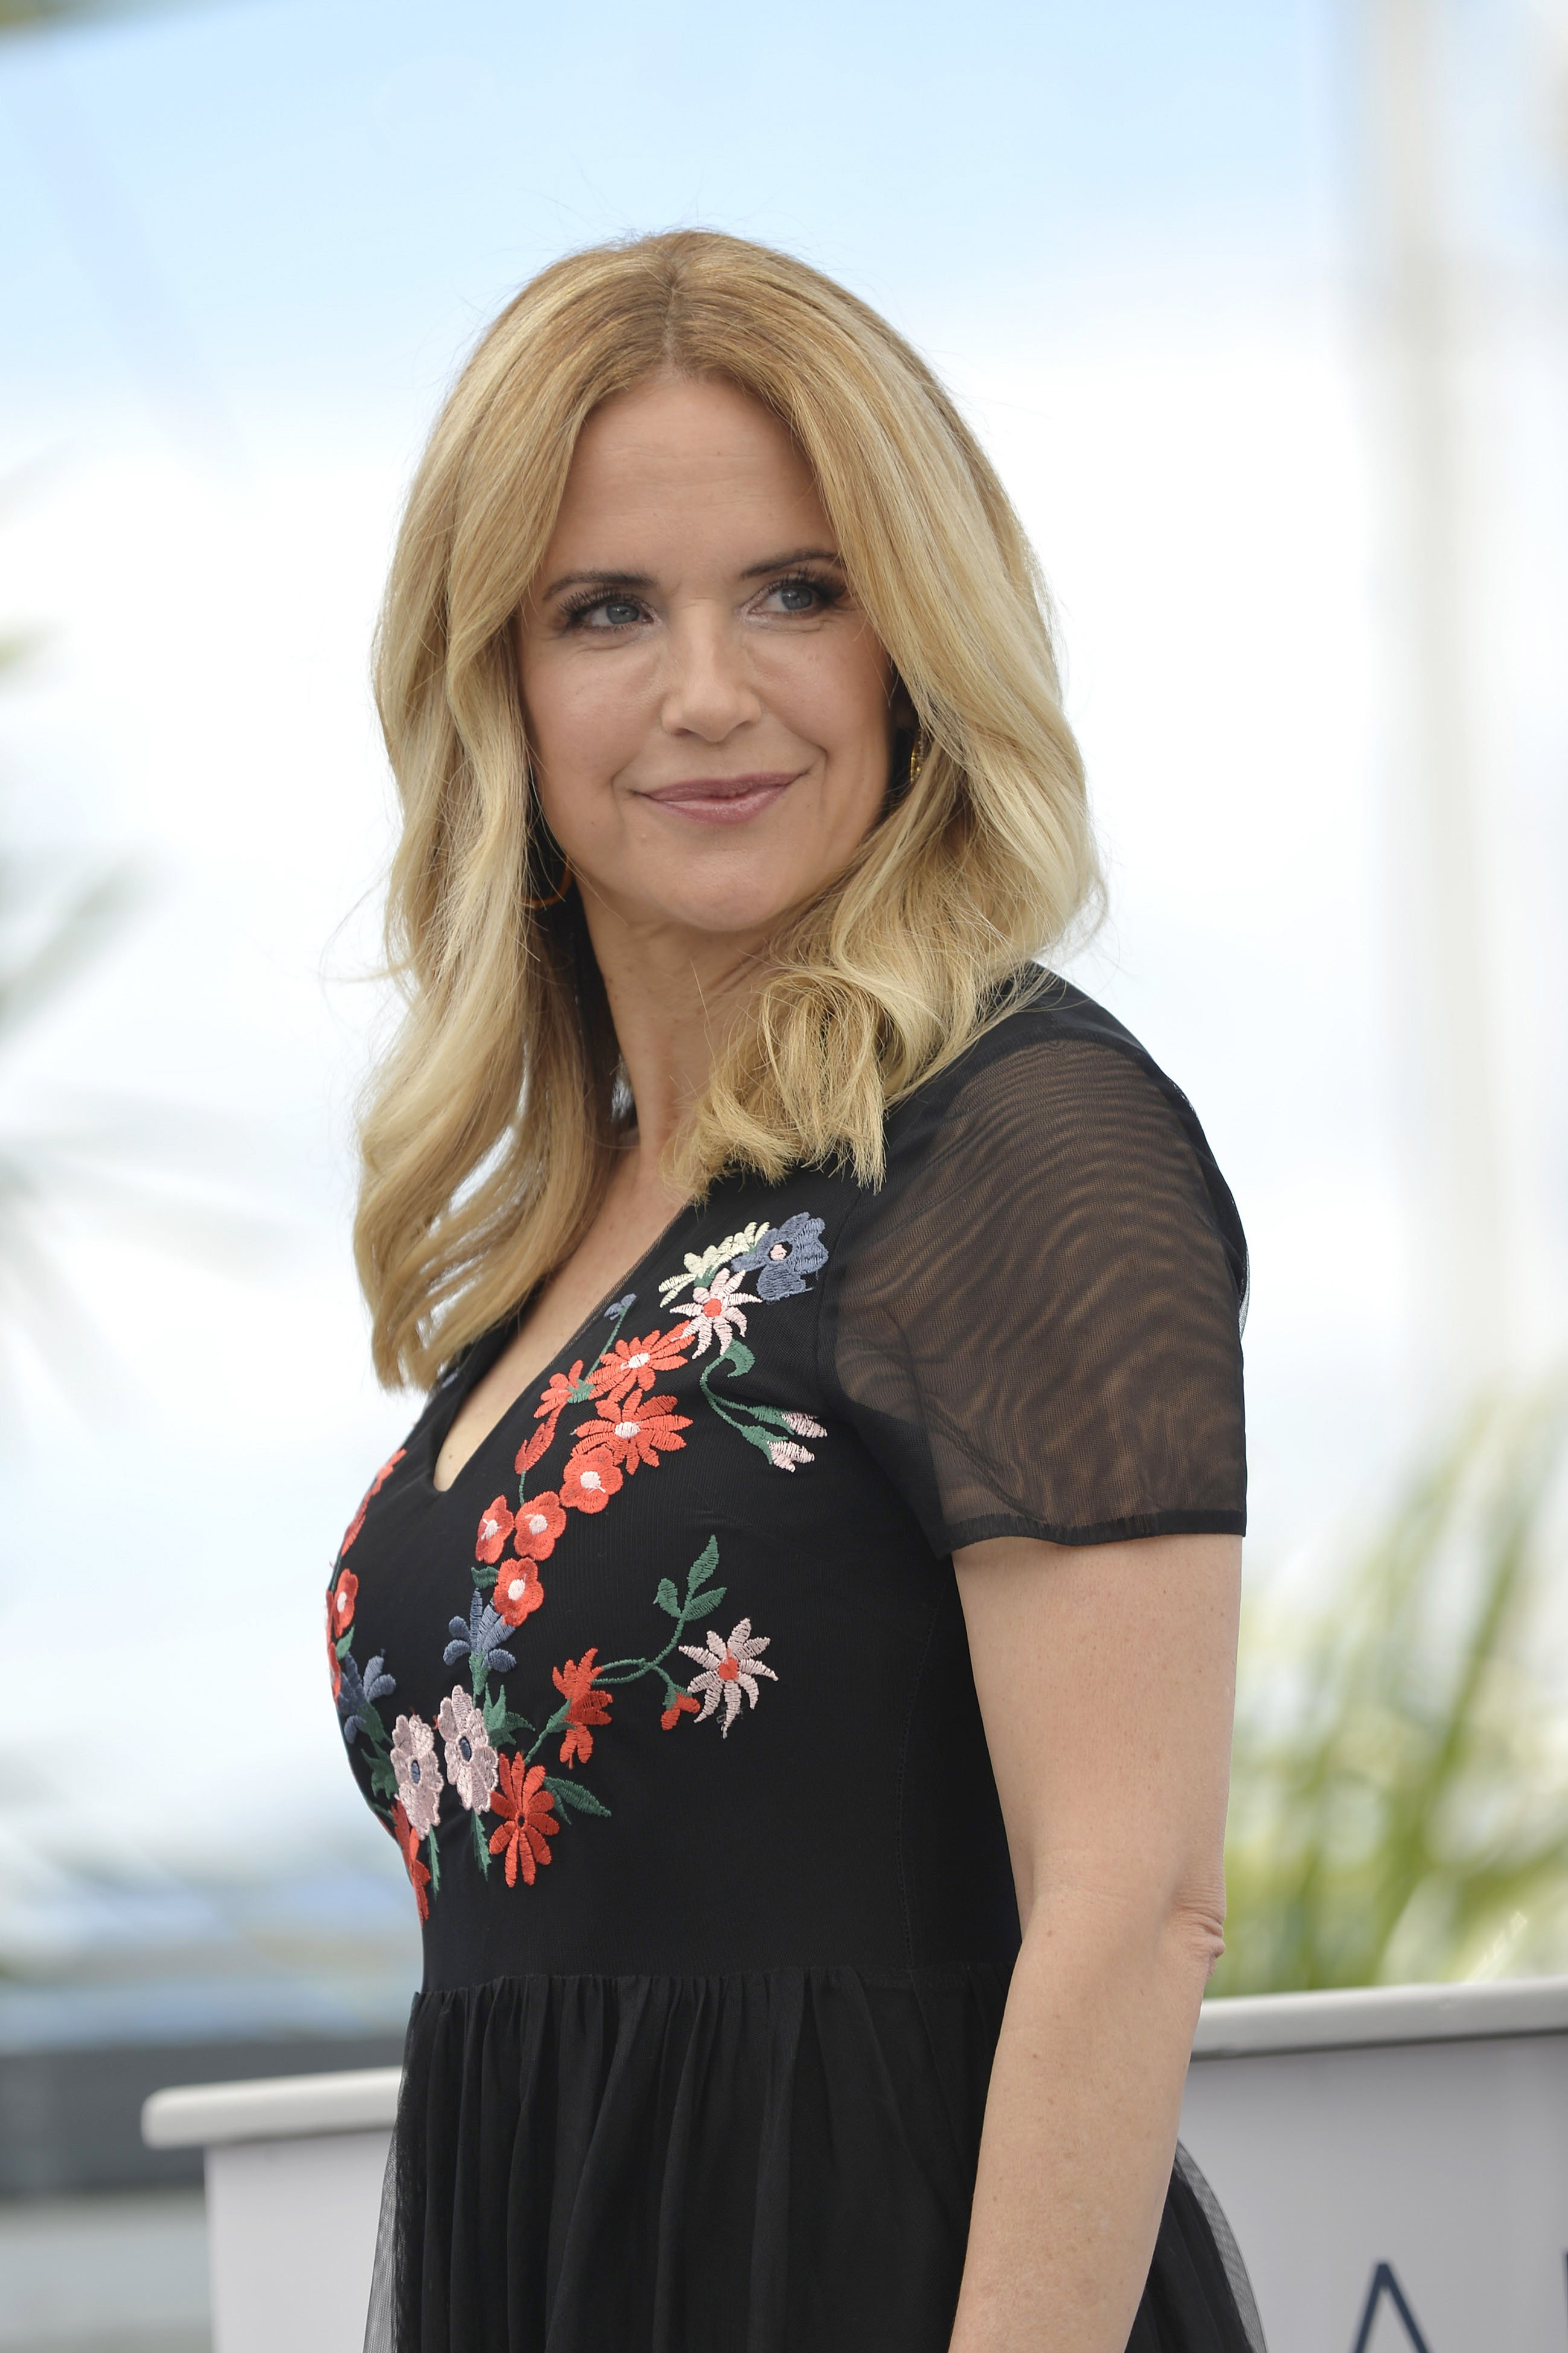 Image Source: Getty Images/Kelly at the Cannes Film Festival